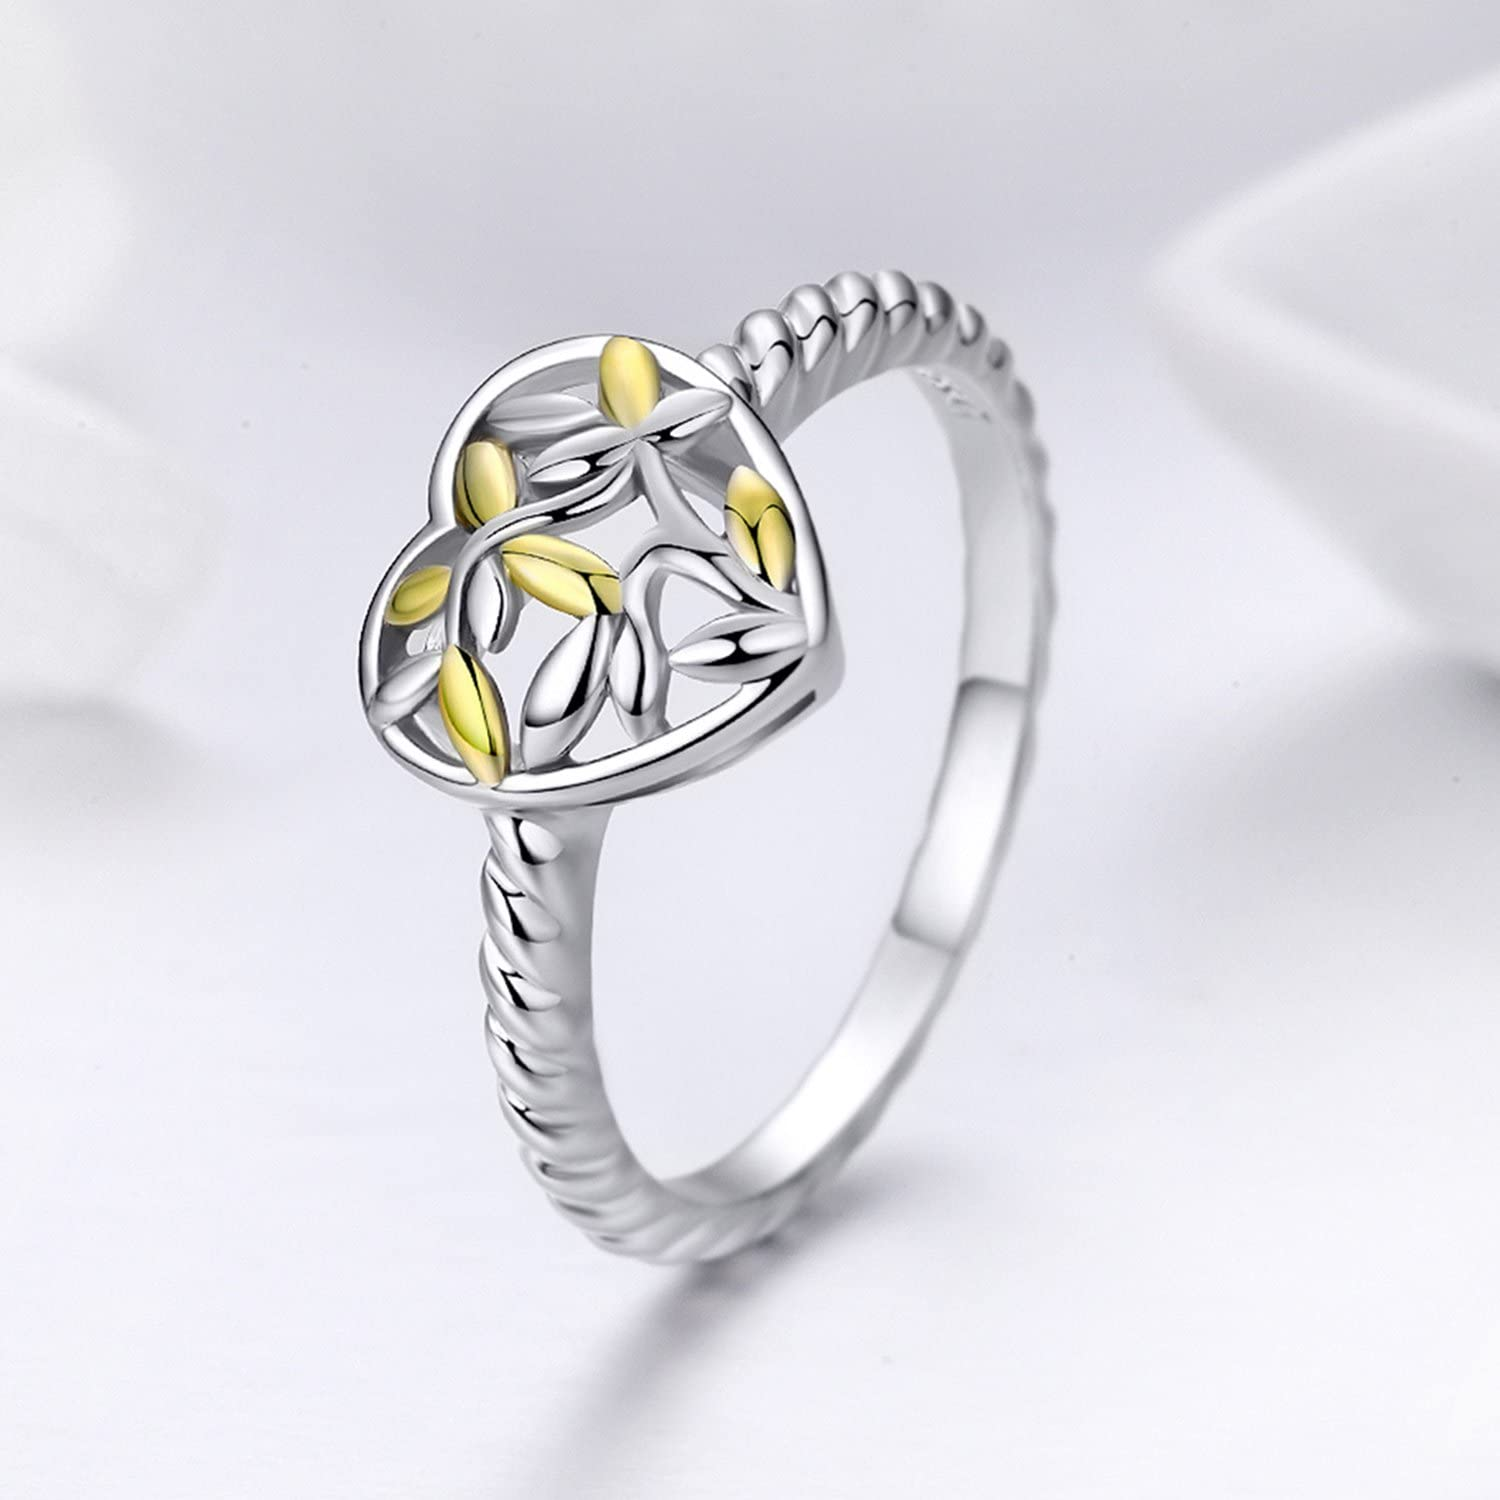 Athena 925 Silver Rings for Girls Tree of Life Heart Ring for Women